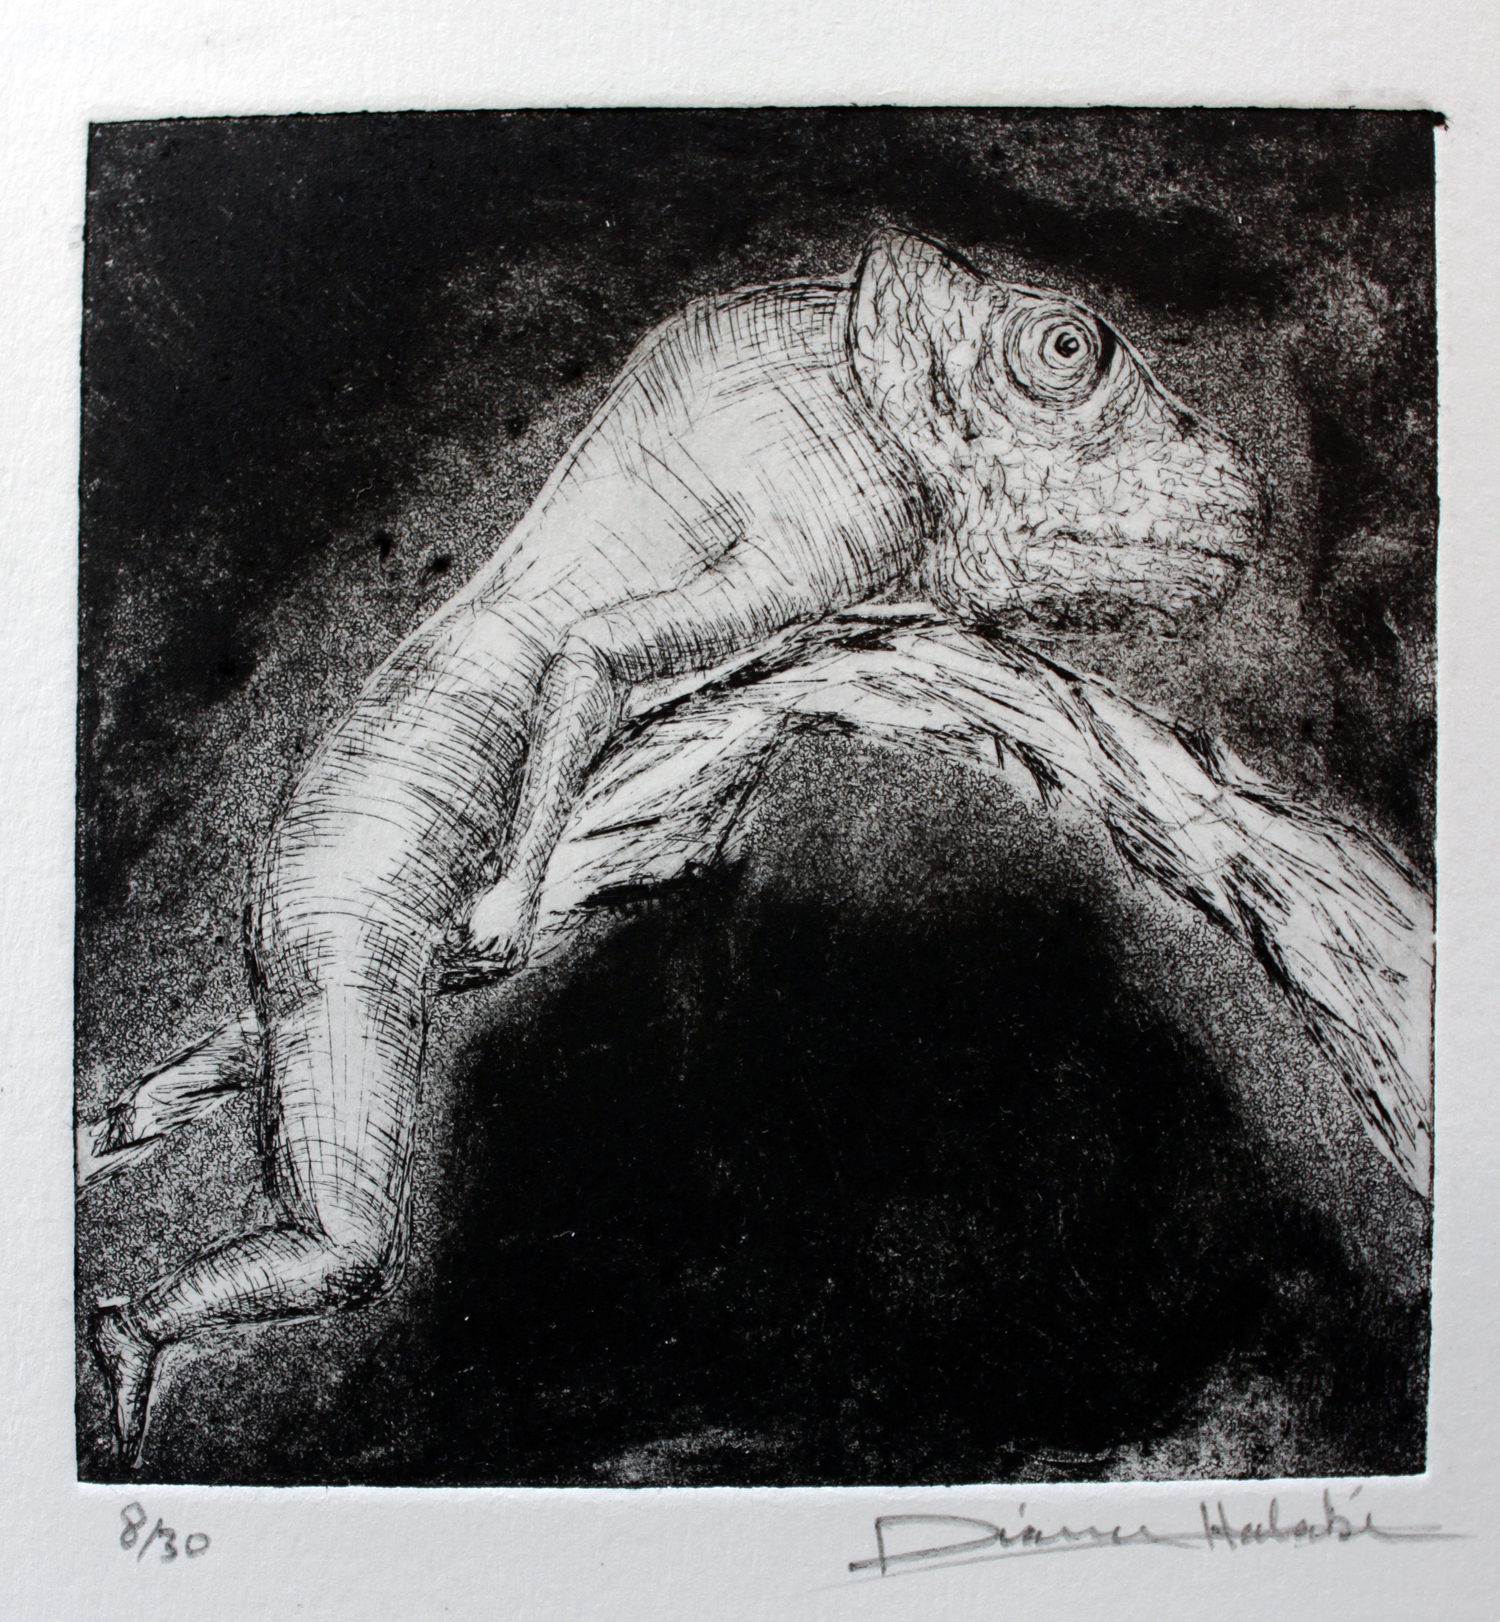 Chameleon etching